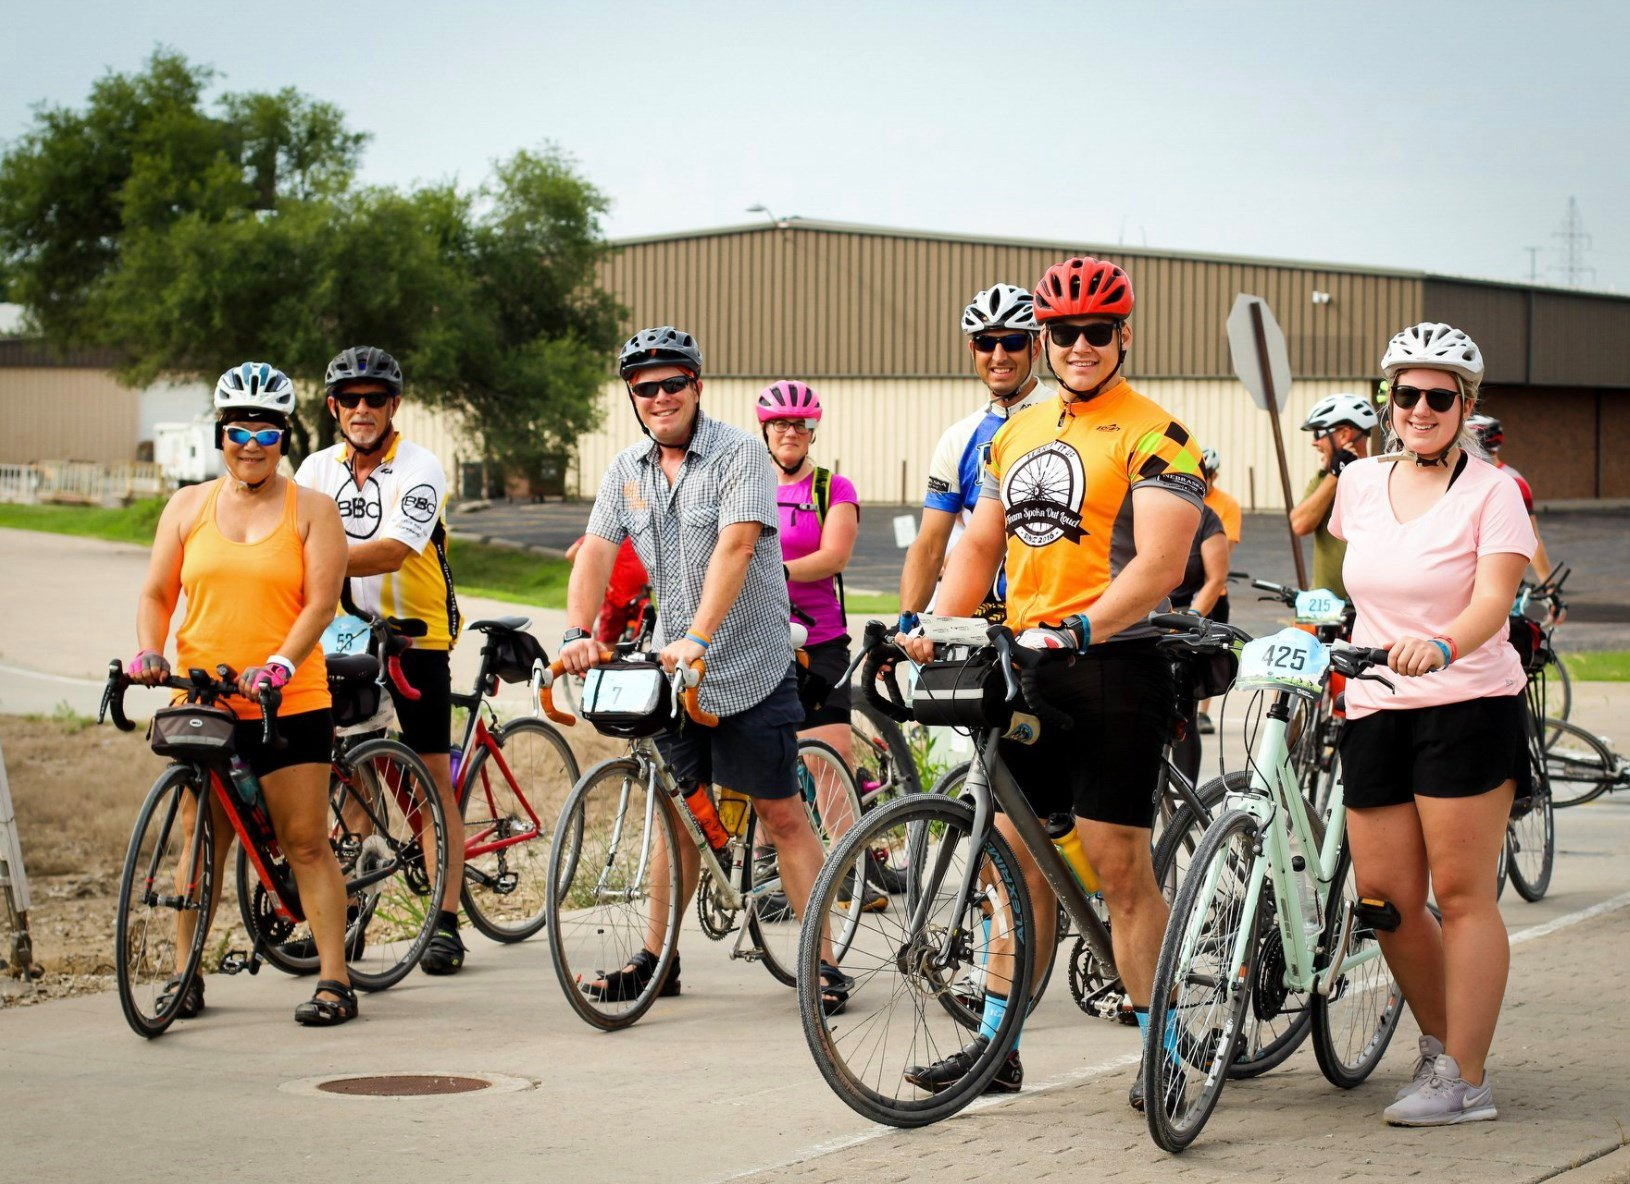 Radler Bicycle Festival this weekend, hospitality urged from motorists